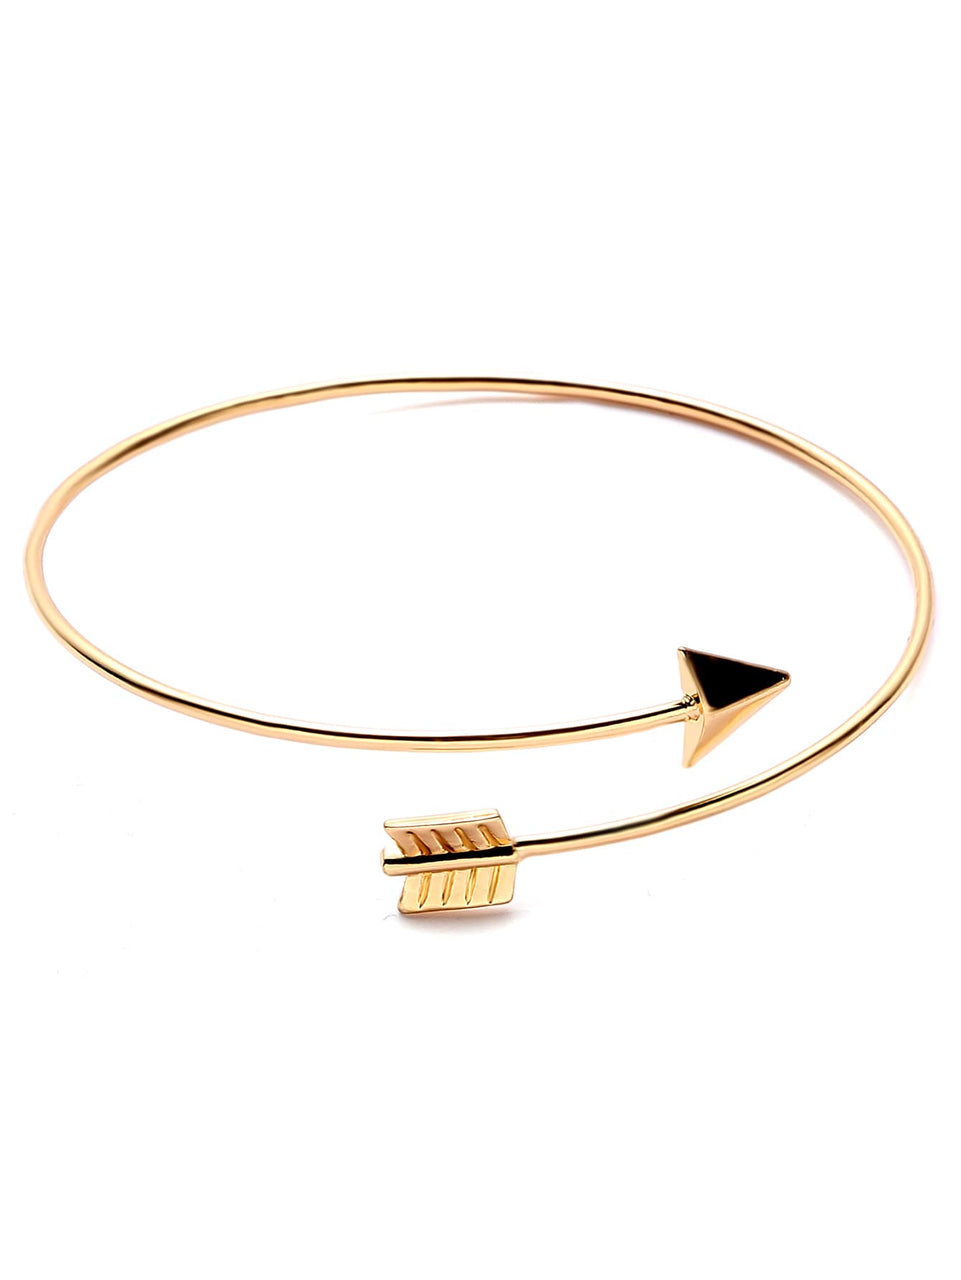 Gold Plated Arrow Wrap Bangle - MIXT Apparel